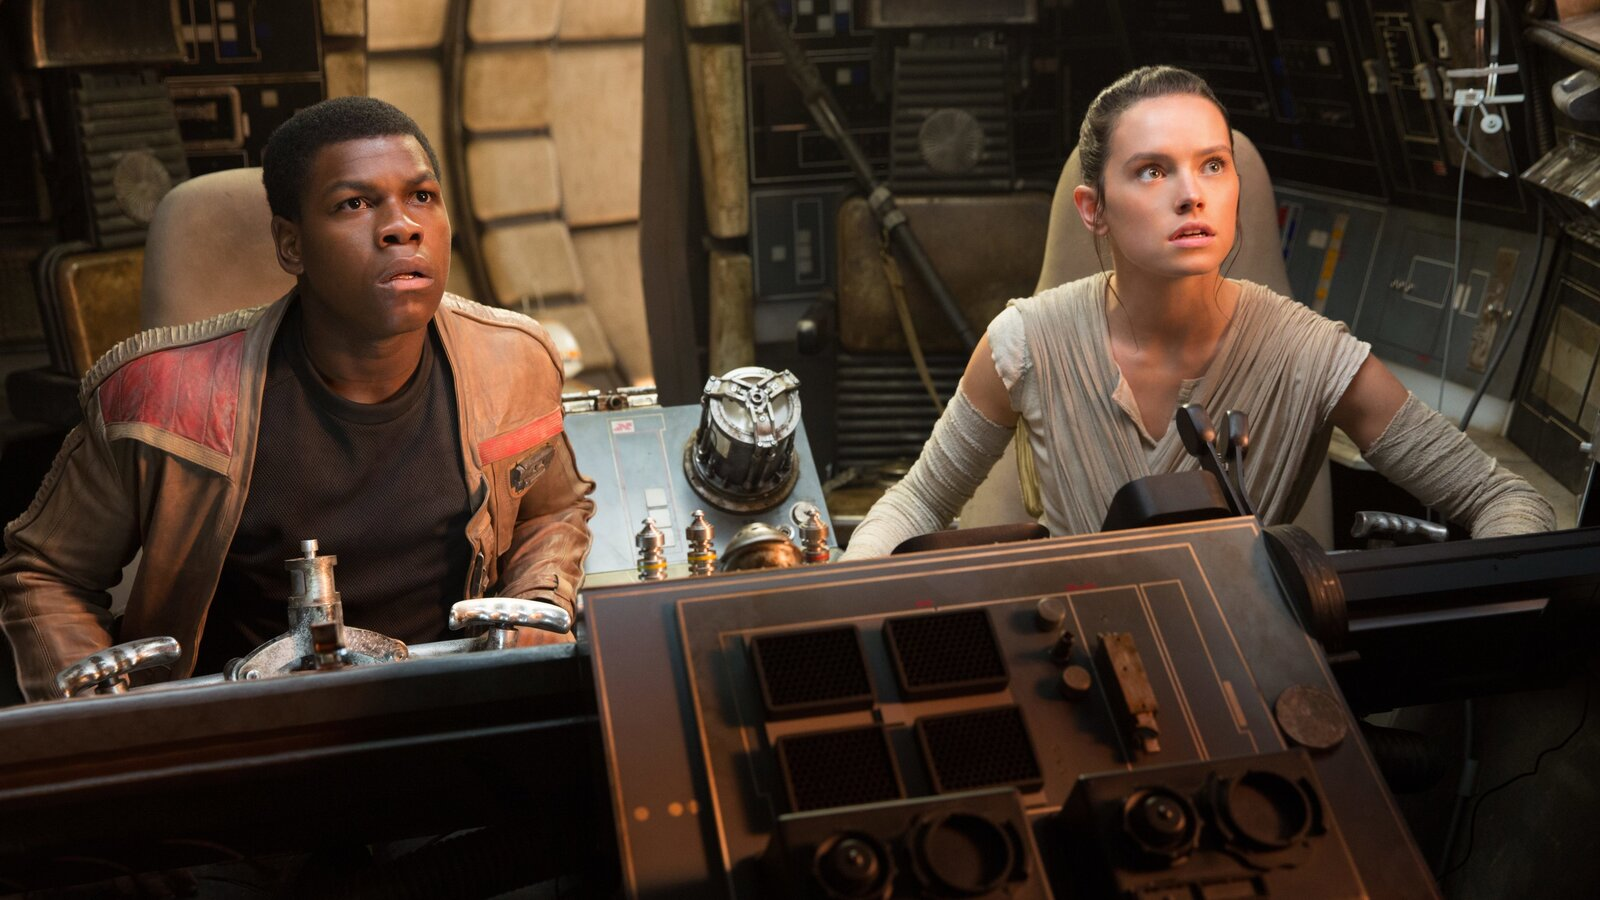 rey-and-finn-star-wars-the-last-jedi-bd.jpg